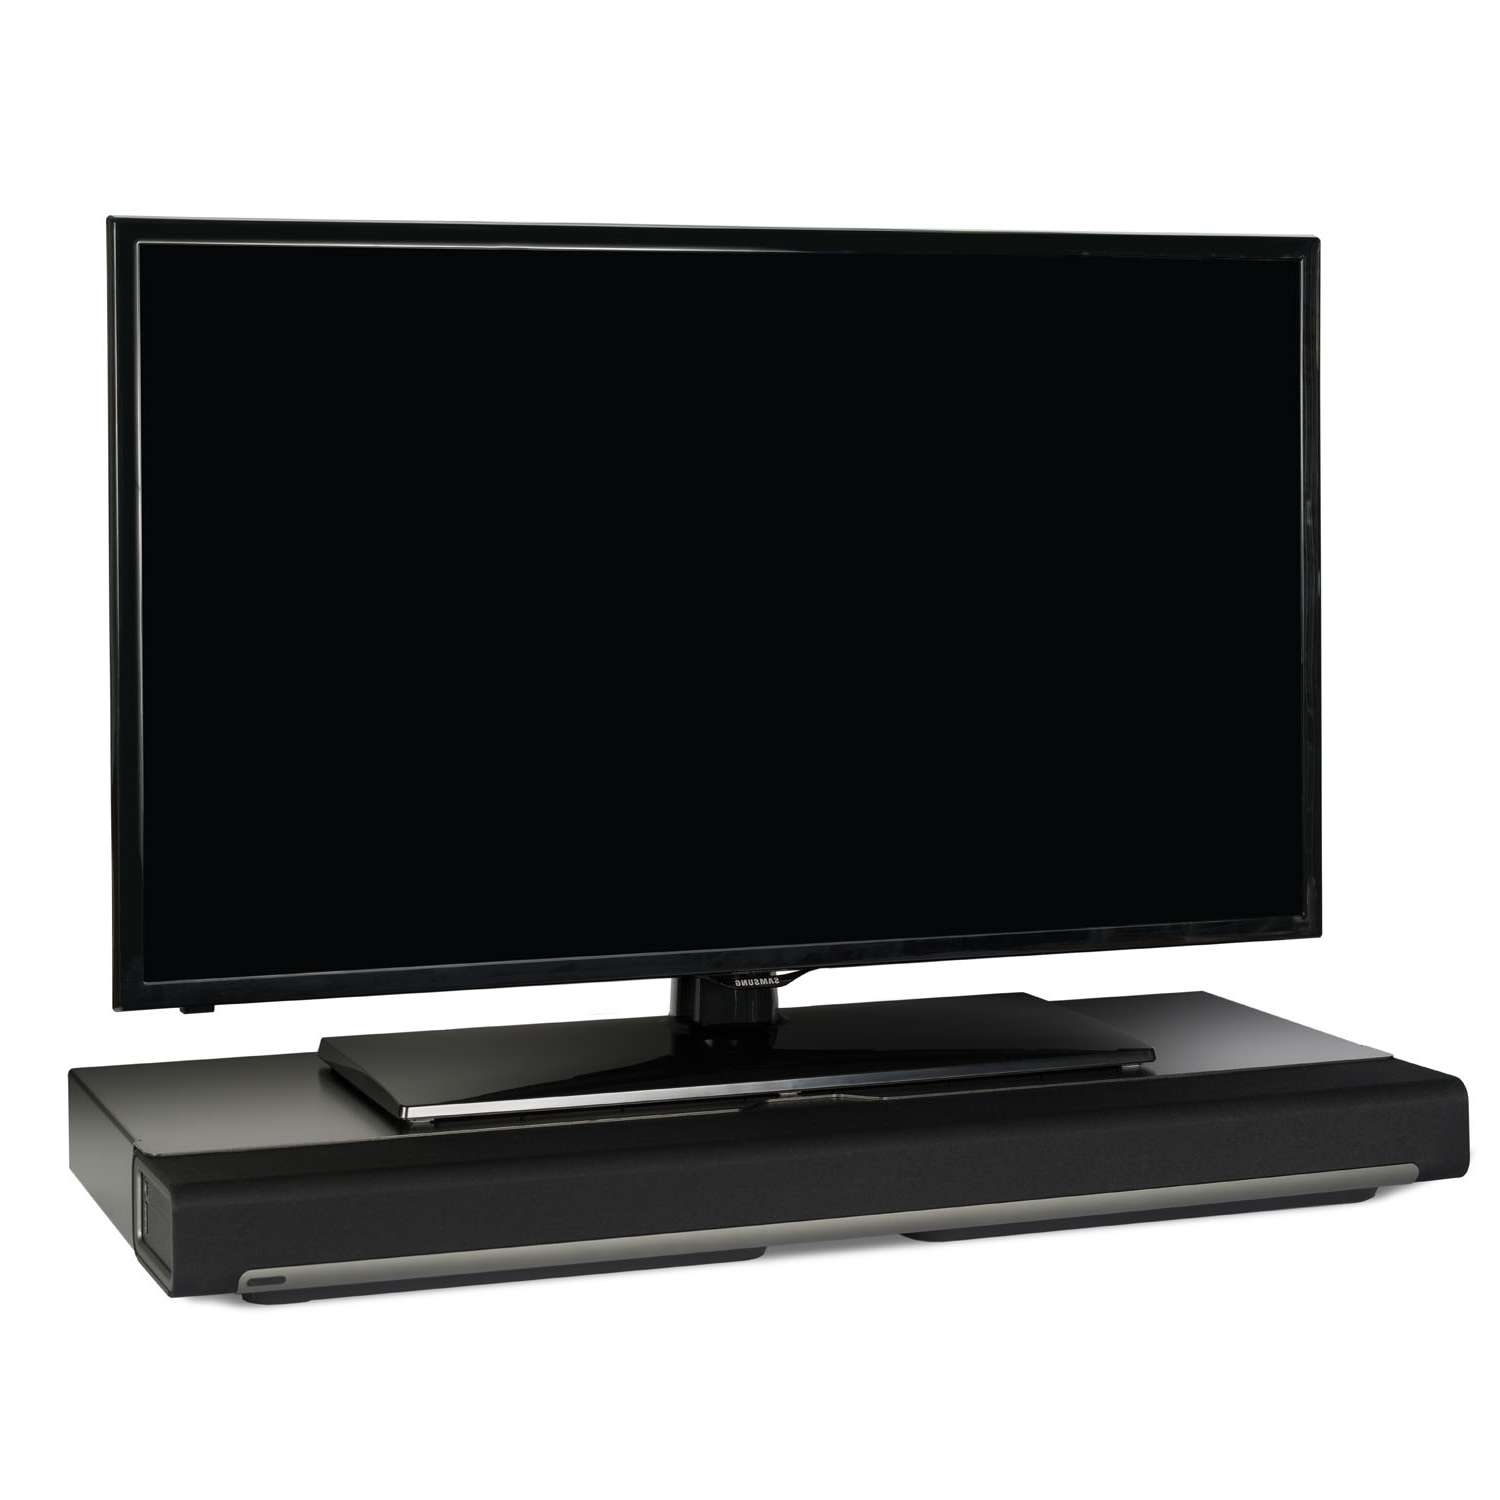 Flexson Tv Stand For Sonos Playbar – Black (Single) – Sonos With Regard To Sonos Tv Stands (View 8 of 15)